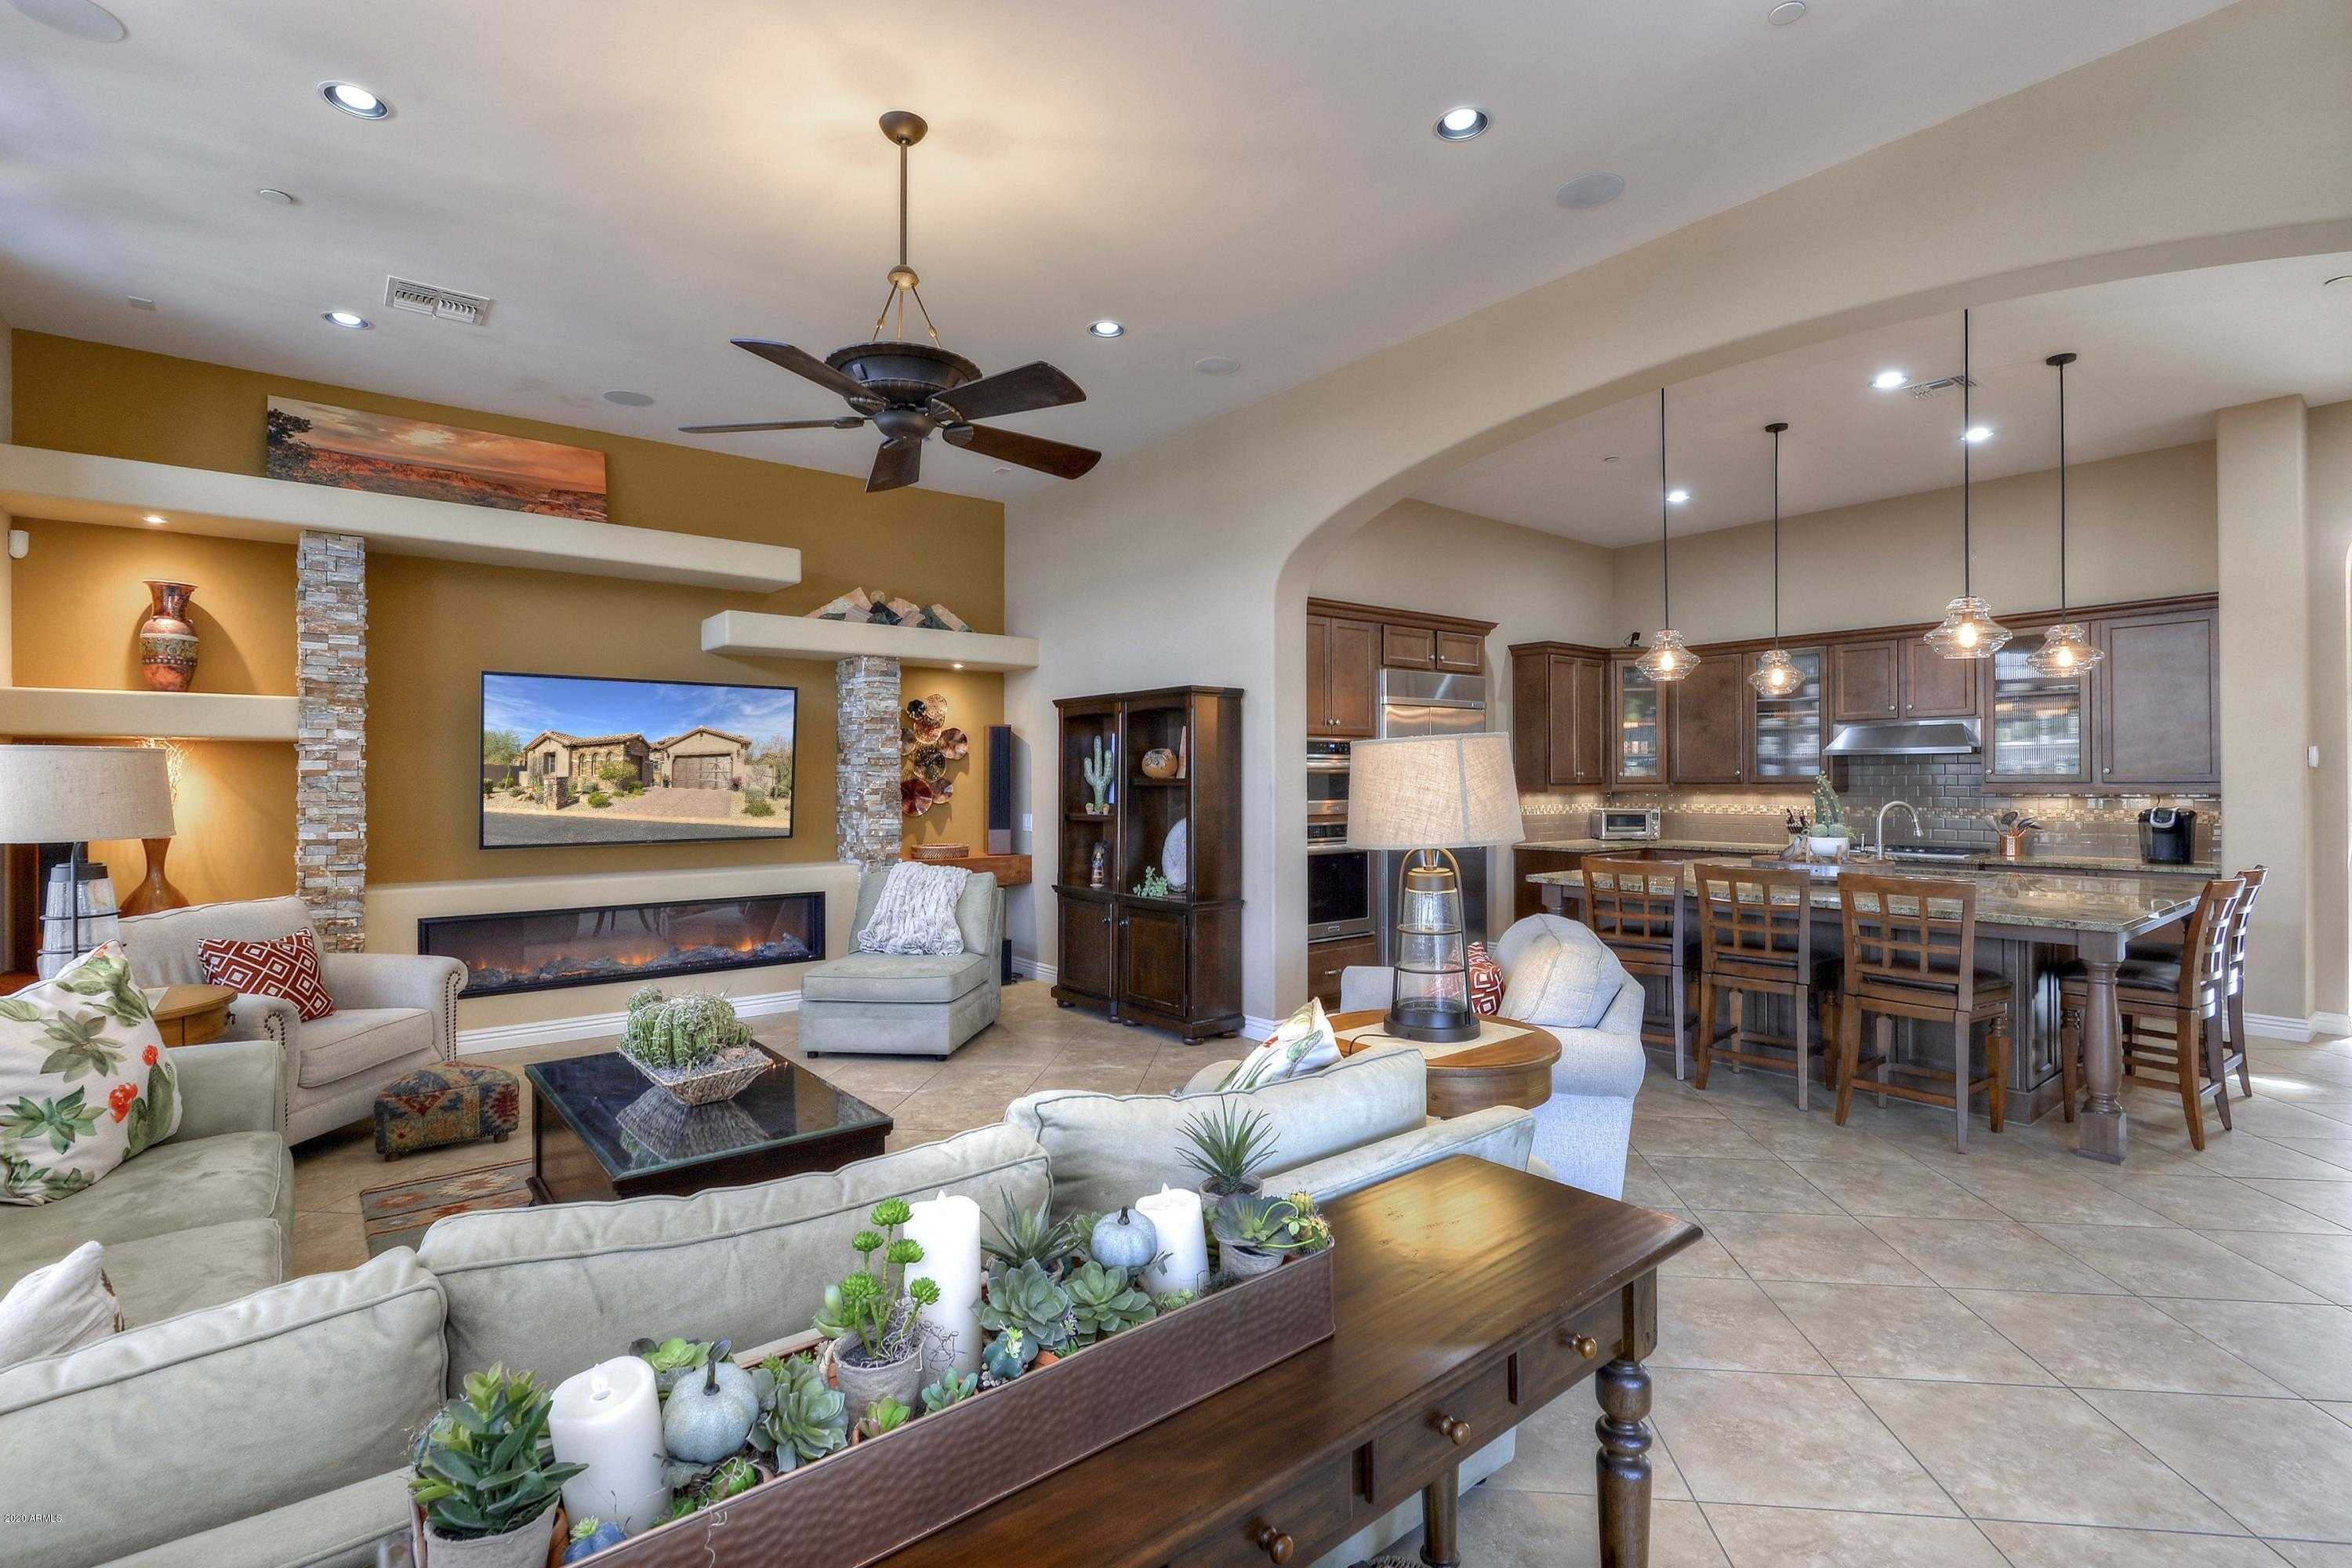 $925,000 - 3Br/3Ba - Home for Sale in Quisana, Scottsdale